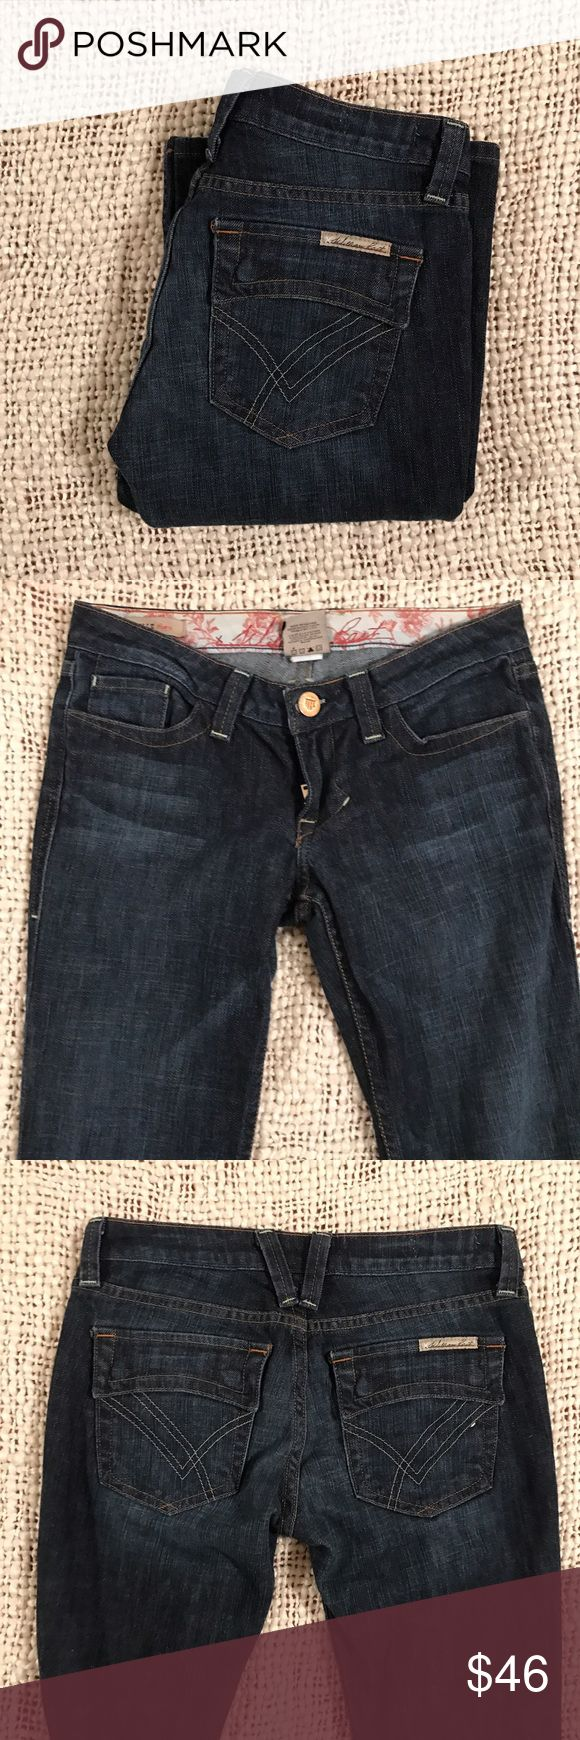 "William Rast jeans ""Belle Flare"" 27x33 Beautiful pair of William Rast jeans size 27x33. Great used condition. Dark wash, low rise, with no wear to heels. Message me for additional measurements. William Rast Jeans Flare & Wide Leg"